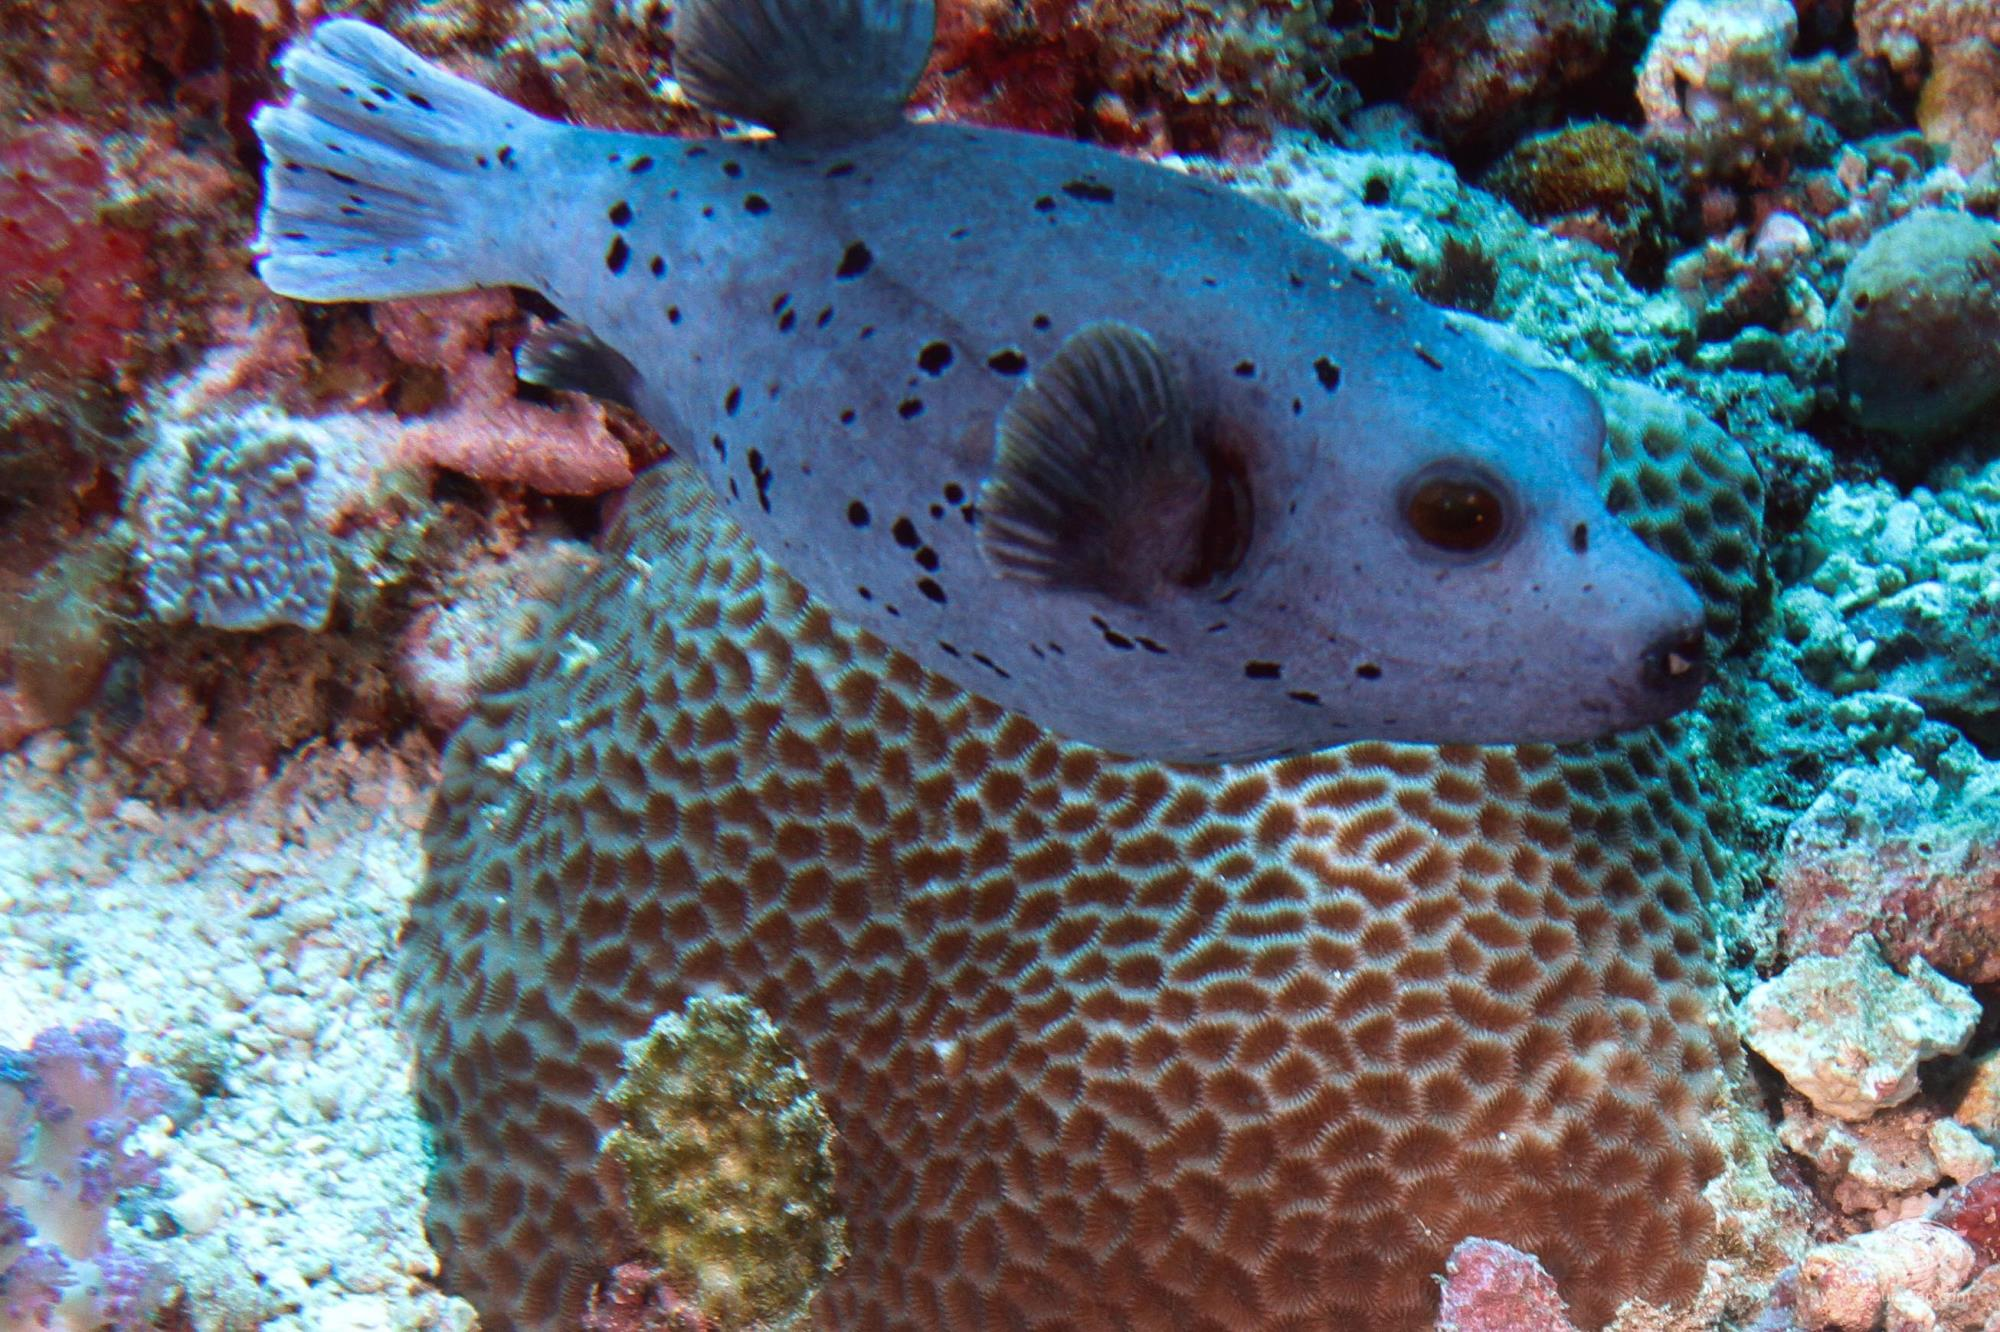 Black spotted pufferfish